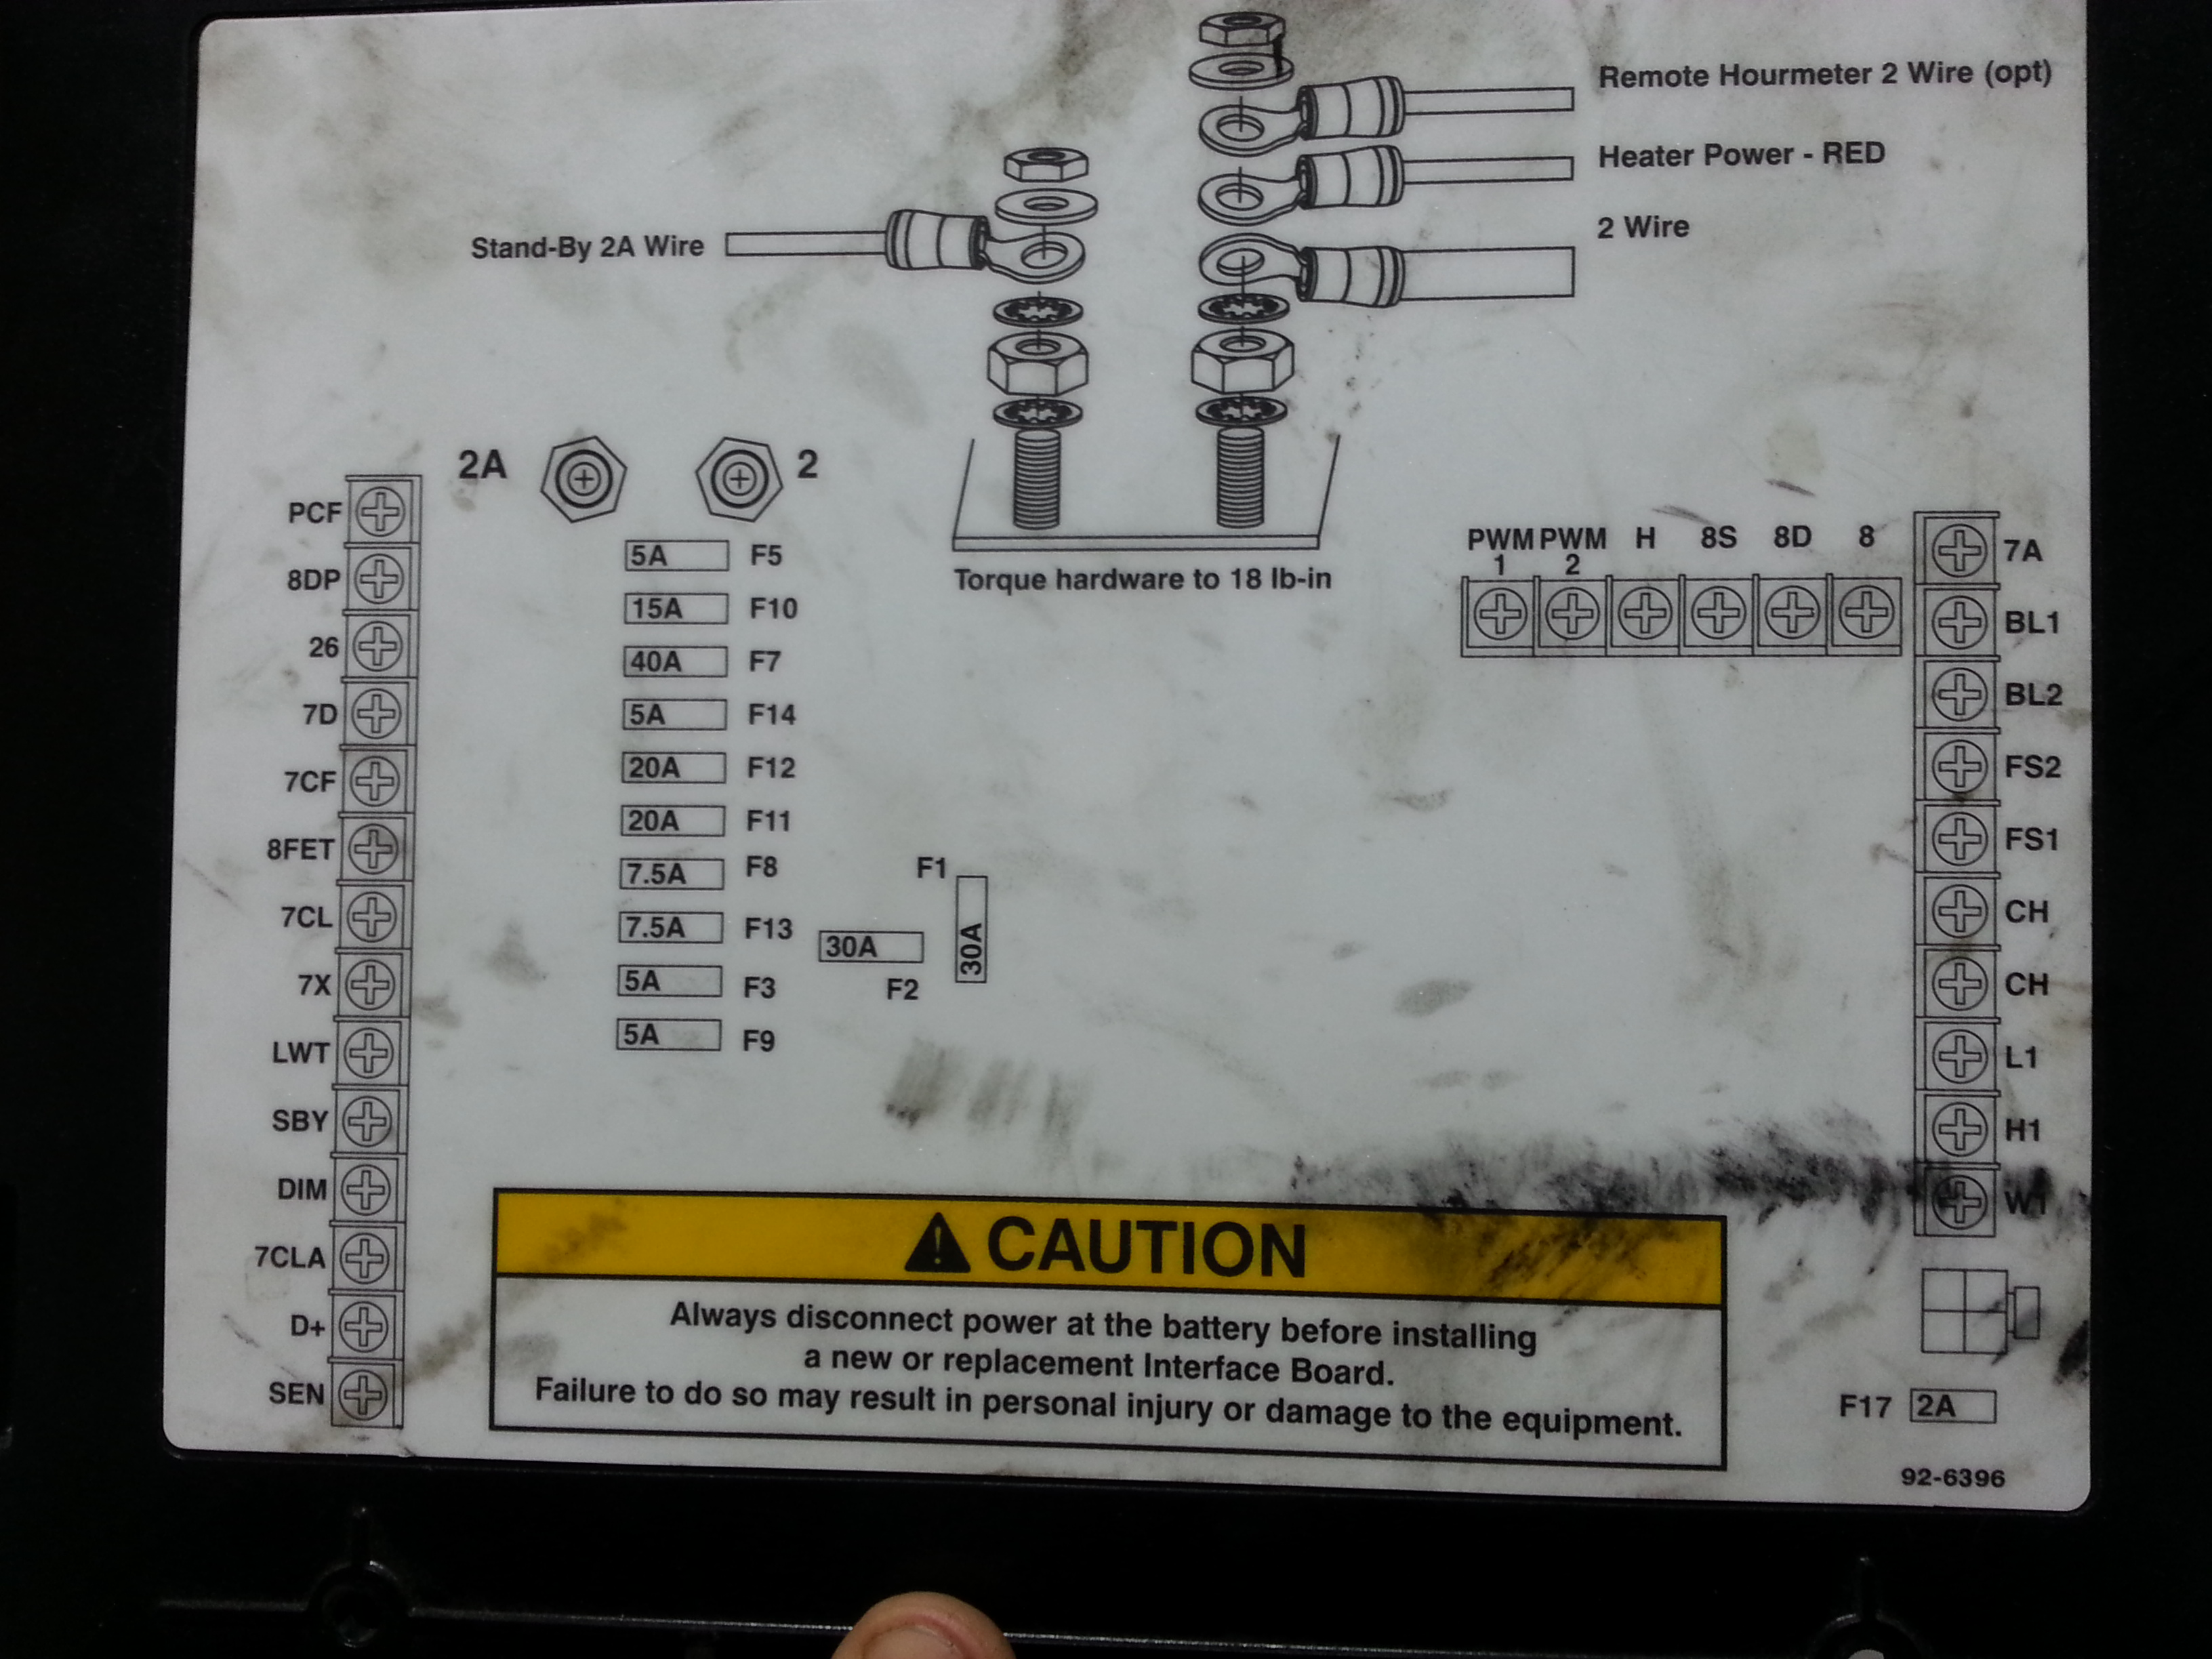 Need Wiring Diagram For 2011 Thermo Tripac  Have Older Installation Manual  But On 2011 Unit All